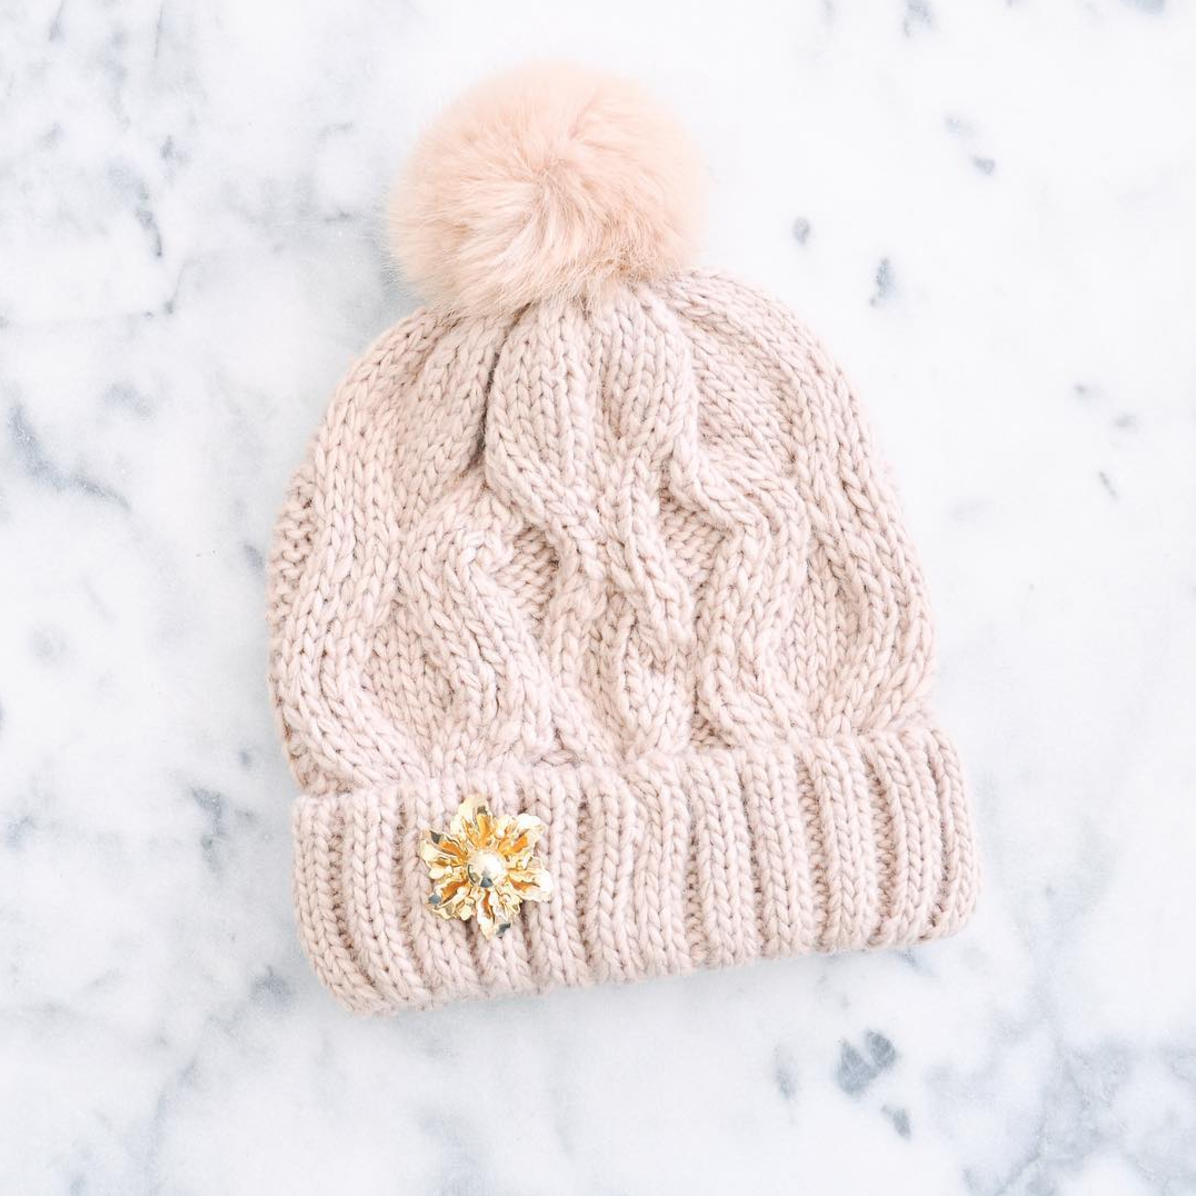 Put a Pin On It: A Brooch That Is (vintage brooch on a winter hat) | Click through for the details. | glitterinc.com | @glitterinc